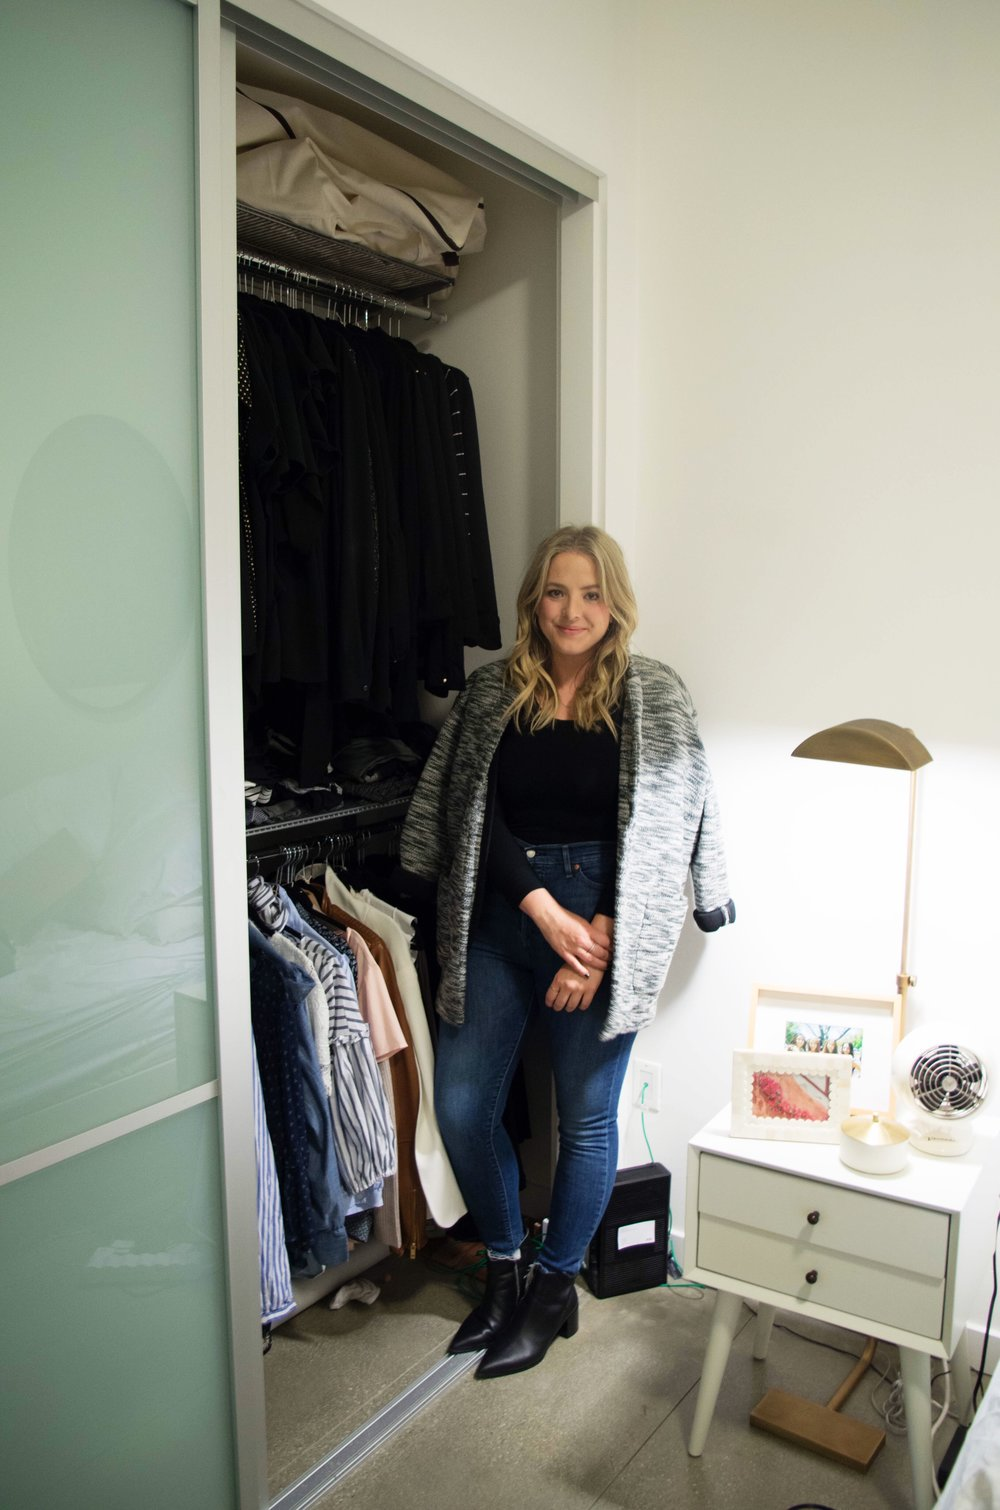 Elise shows me her closet. As I suspected, the black and white overpowered the patterns and stripes. She wears a  Banana Republic  jacket,  Yummie bodysuit ,  Levi's jeans , and  Everlane boots .